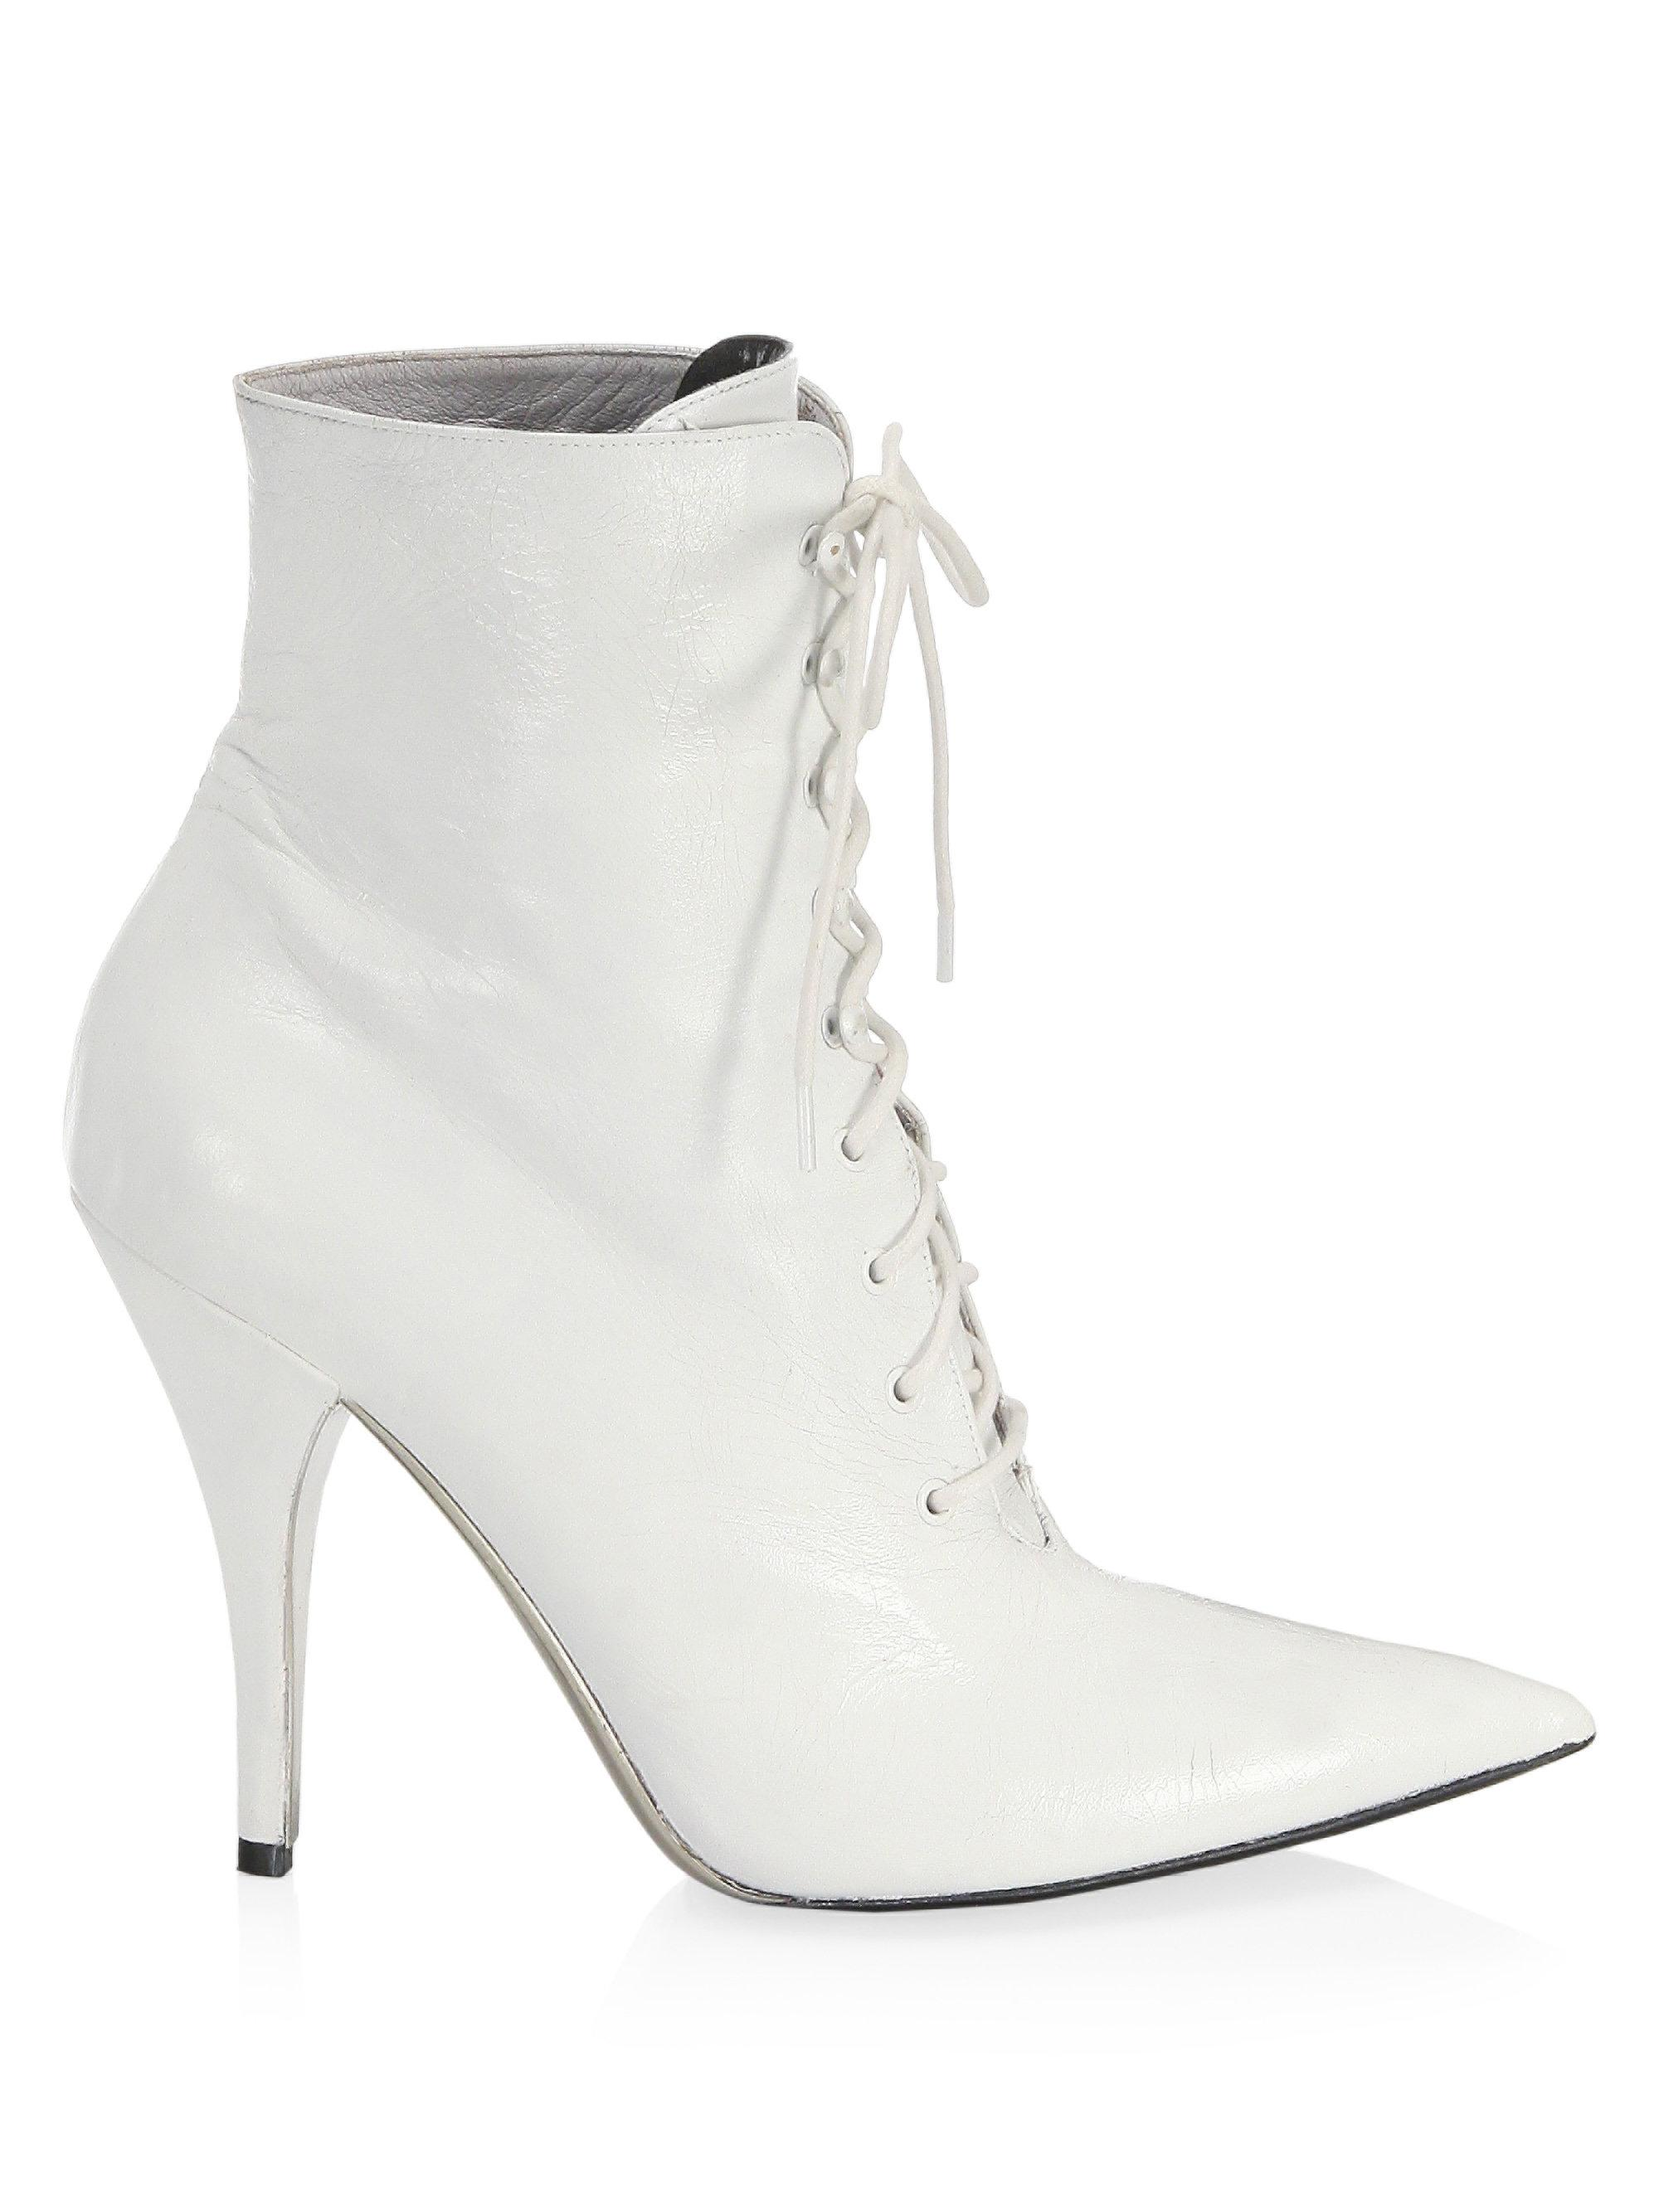 Calvin Klein Rosemarie Leather Lace-Up Ankle Boots y0bCQR